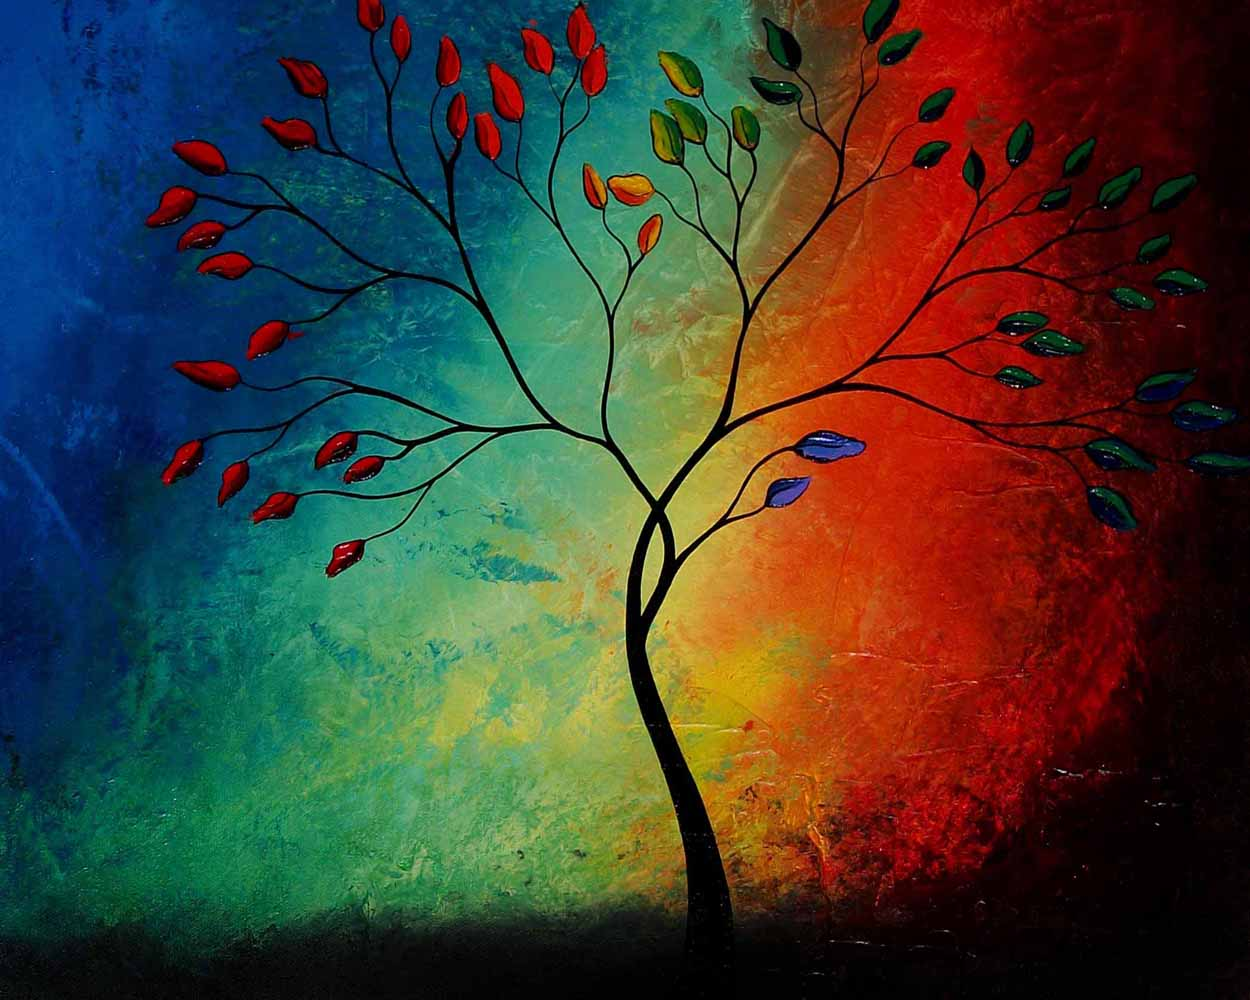 The Promise Tree by Jaime Best - Abstract Landscape Canvas Print ...